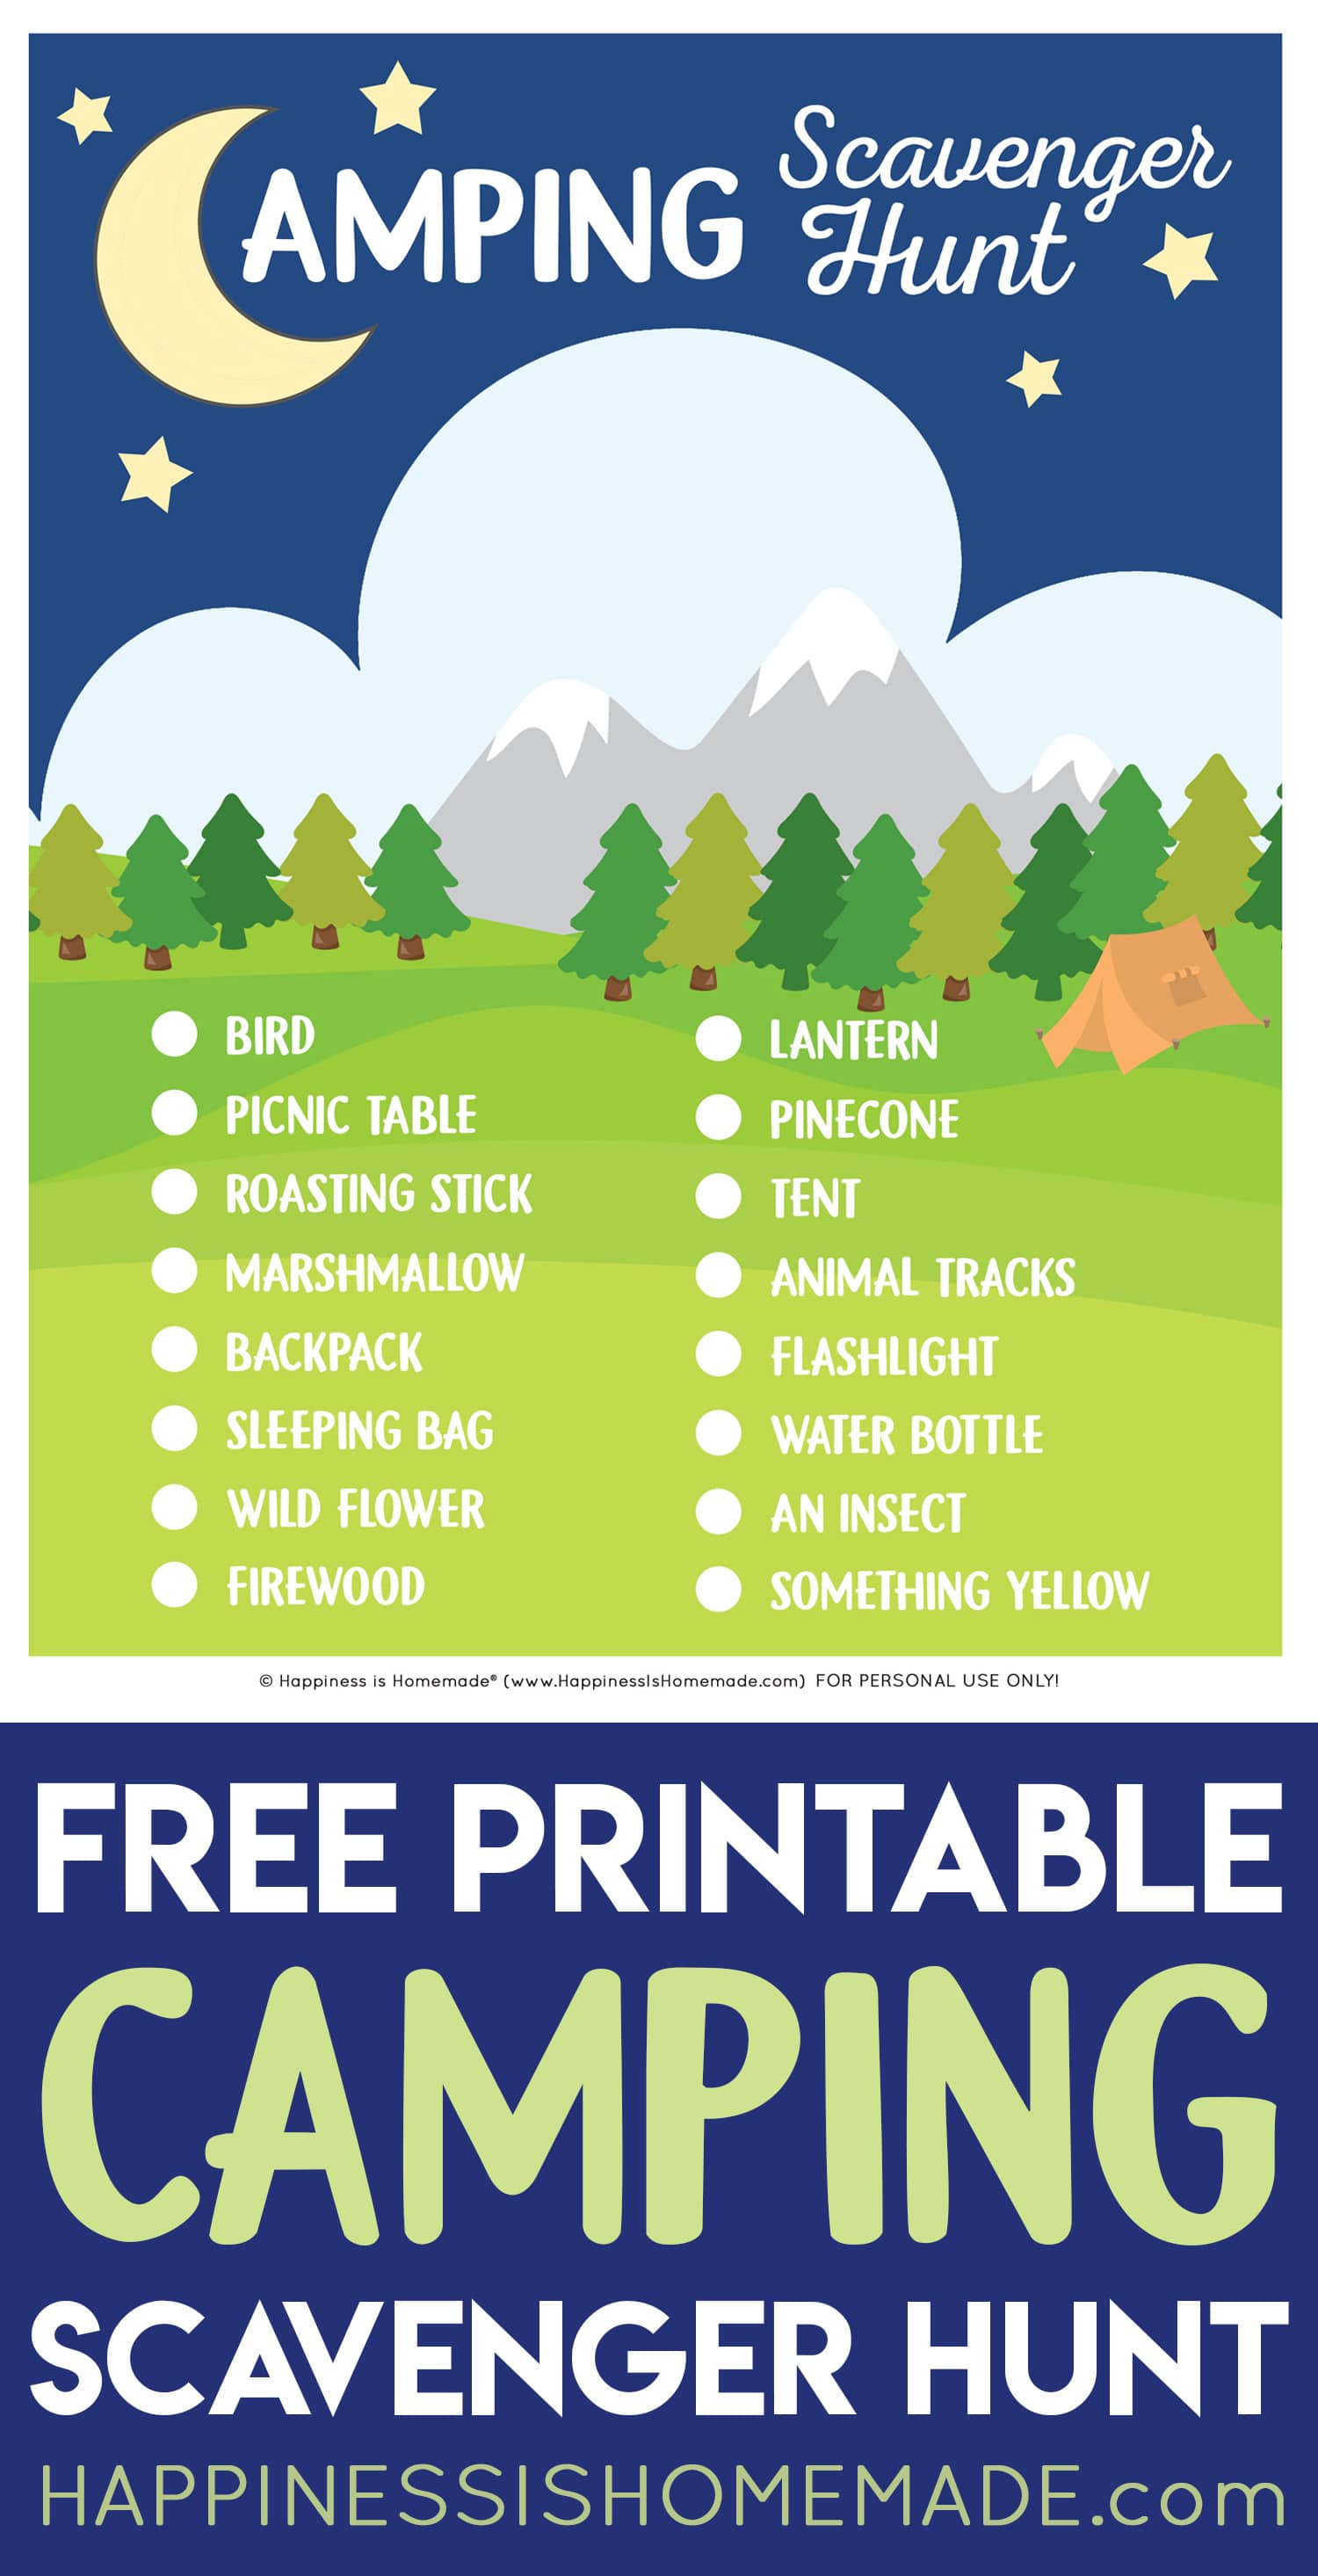 """Free Printable Camping Scavenger Hunt"" graphic with text"